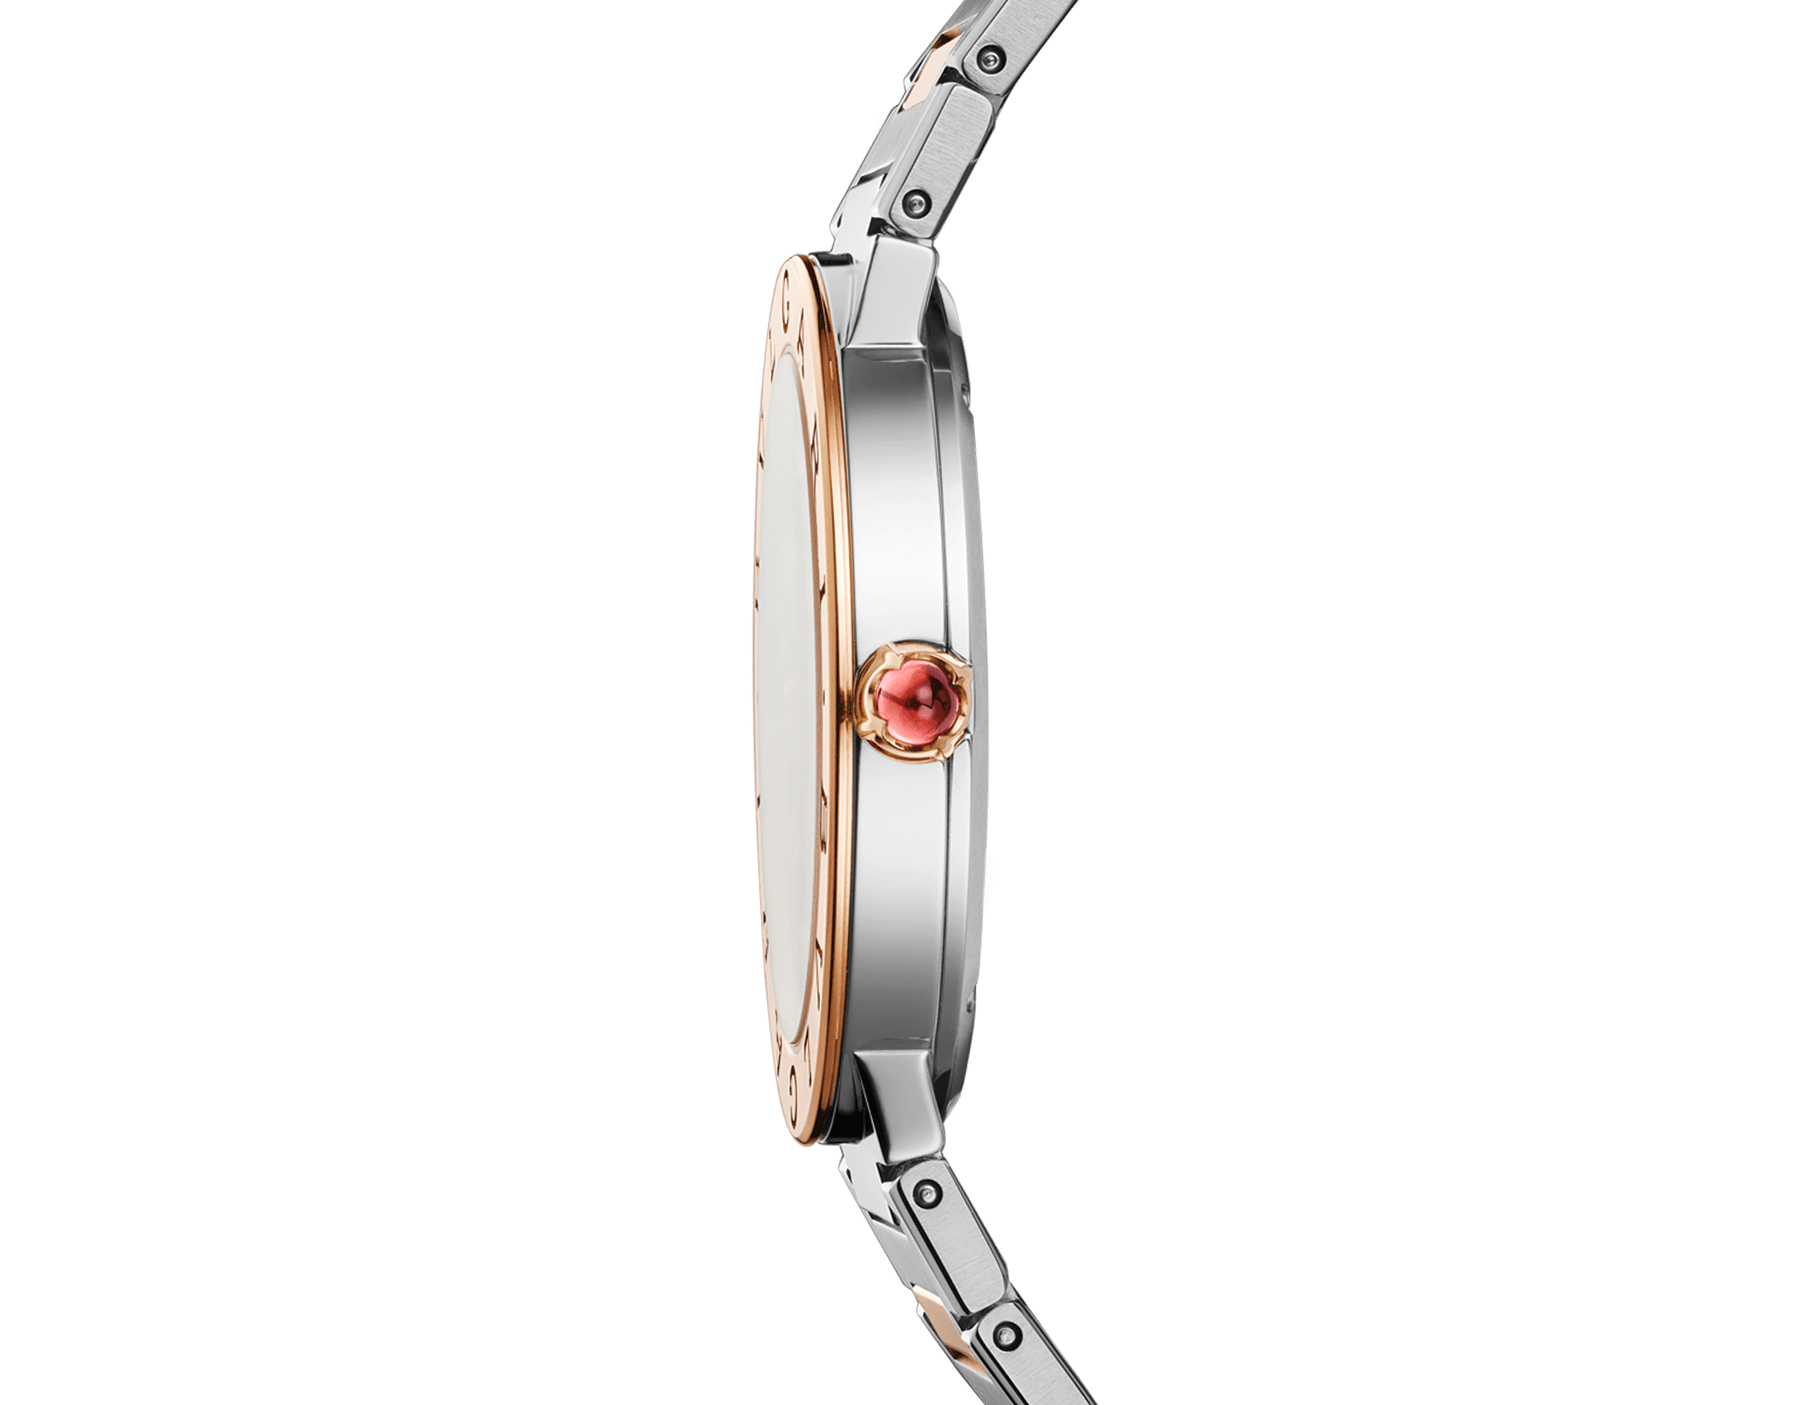 BVLGARI BVLGARI watch in 18 kt rose gold and stainless steel case and bracelet, 18 kt rose gold bezel engraved with double logo, green satiné soleil lacquered dial and diamond indexes 103202 image 3